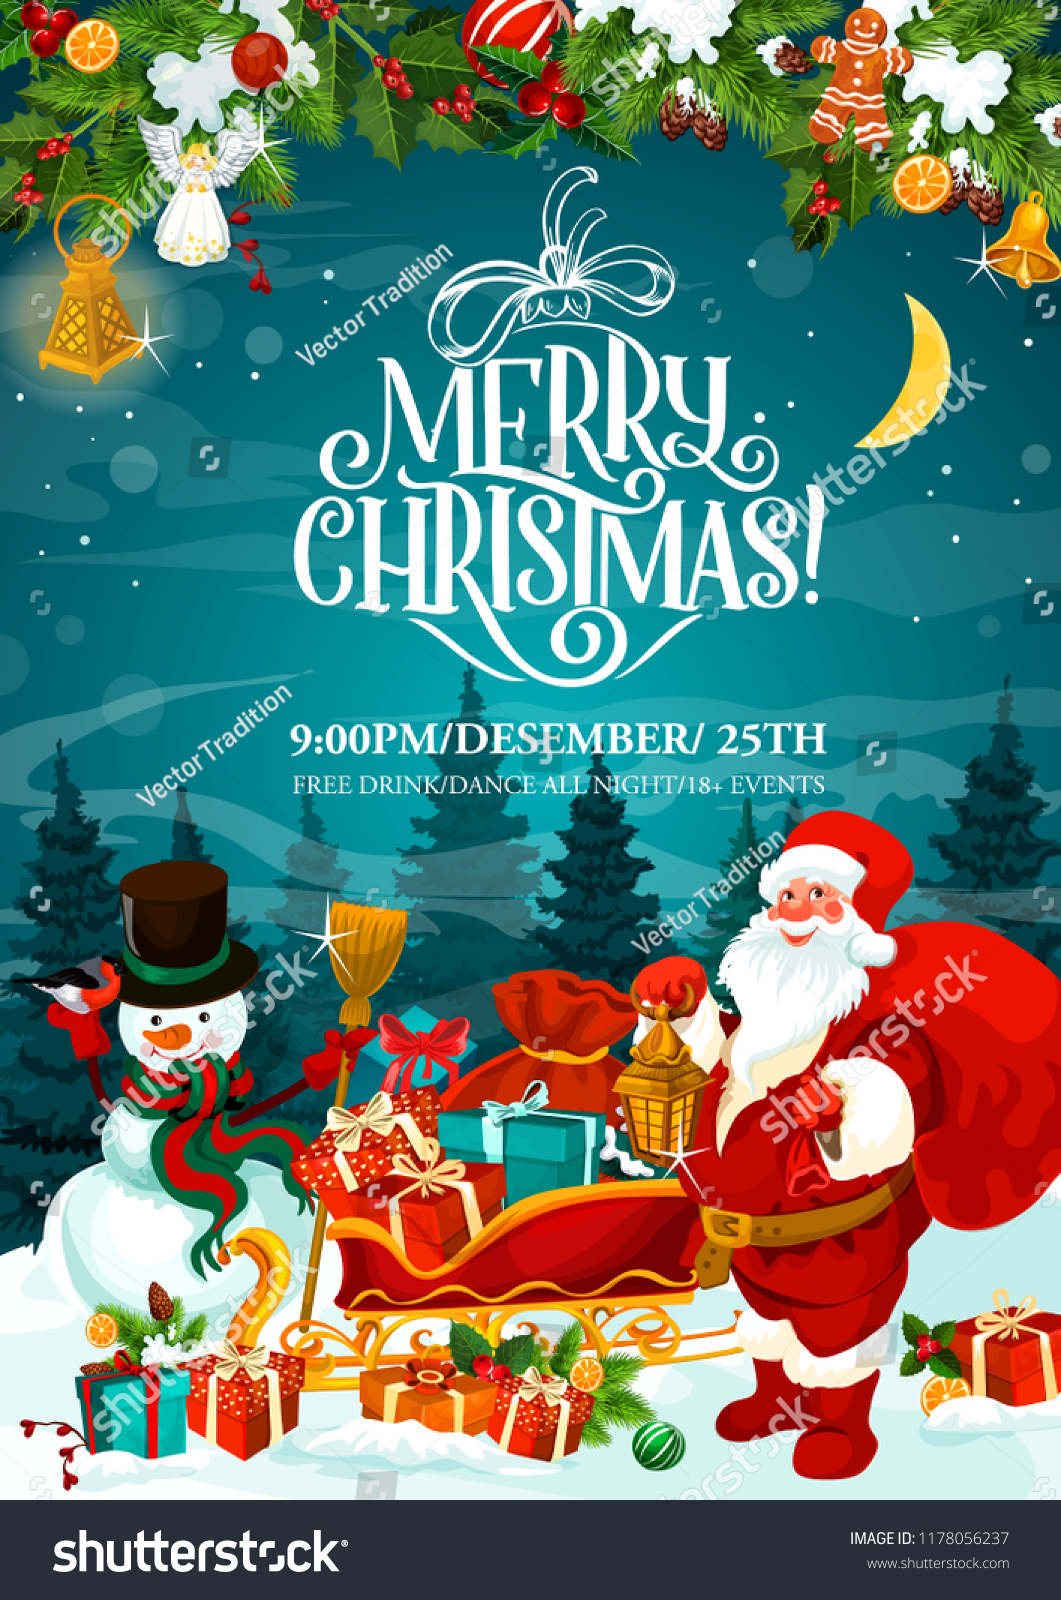 Merry Christmas Greeting Card Xmas Party Stock Vector (Royalty Free)  1178056237